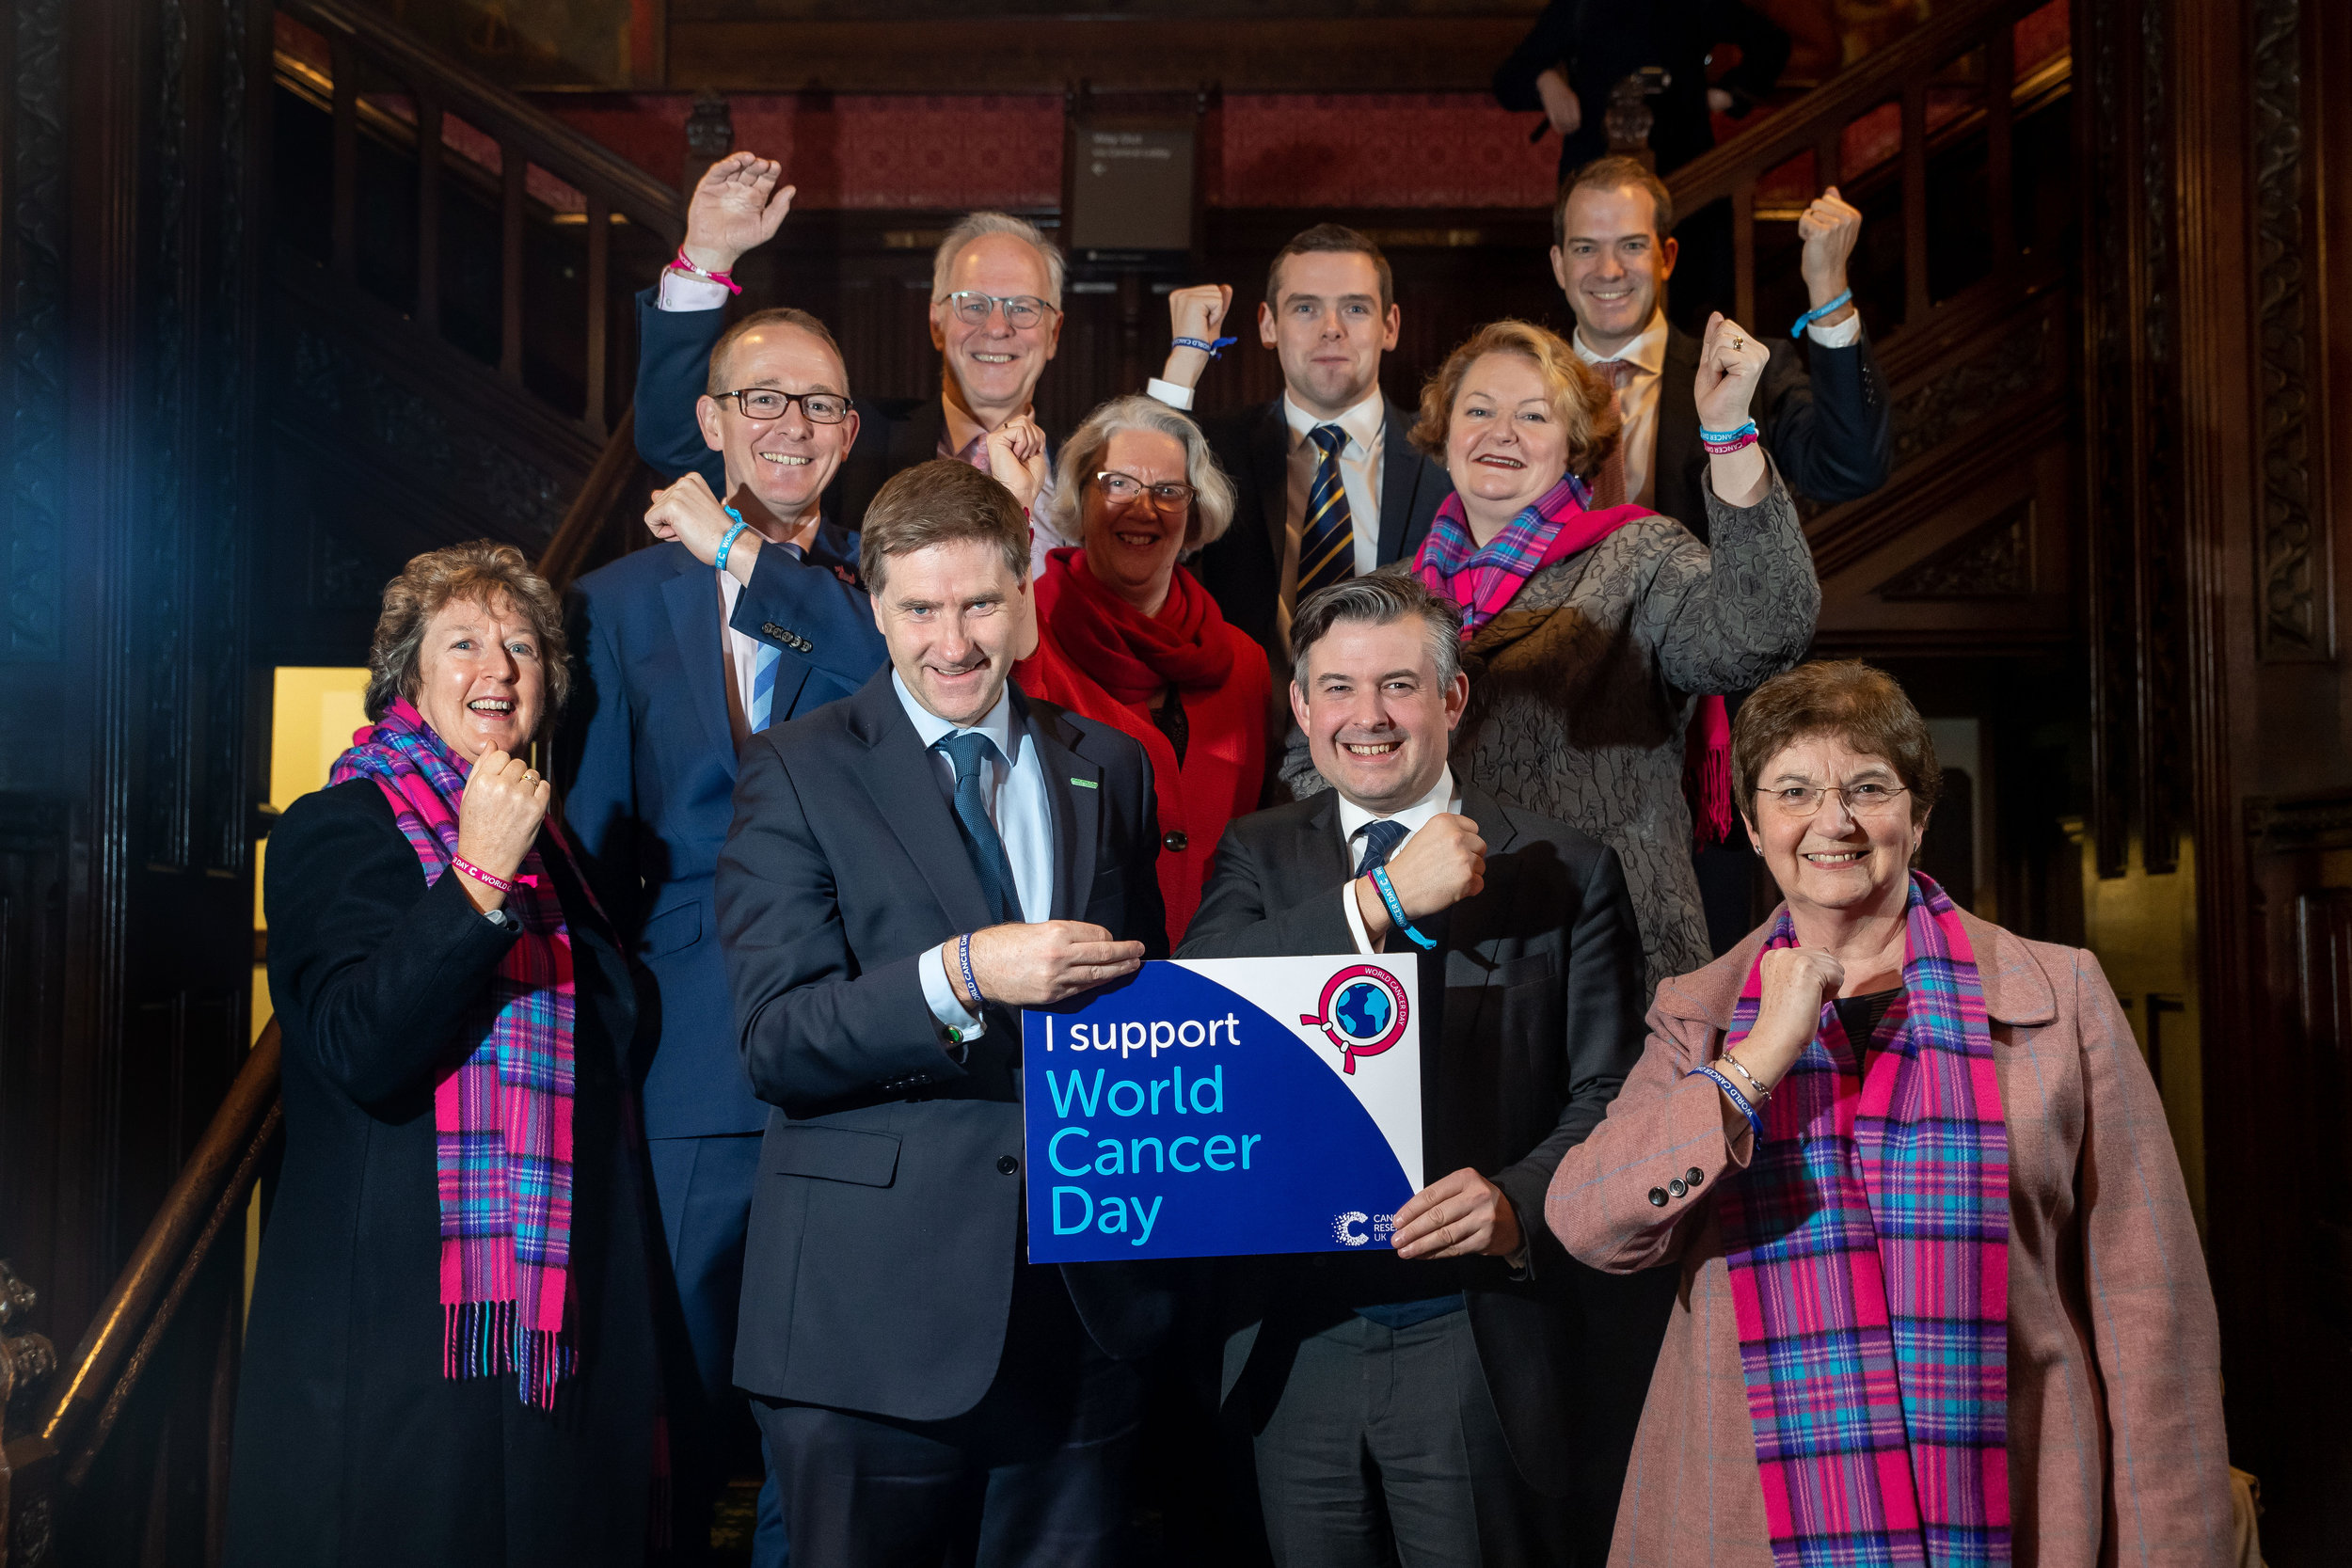 Jon joined a cross-party group of politicians to show support for people affected by cancer, as the Parliament was illuminated for the World Cancer Day - Monday February 4 2019